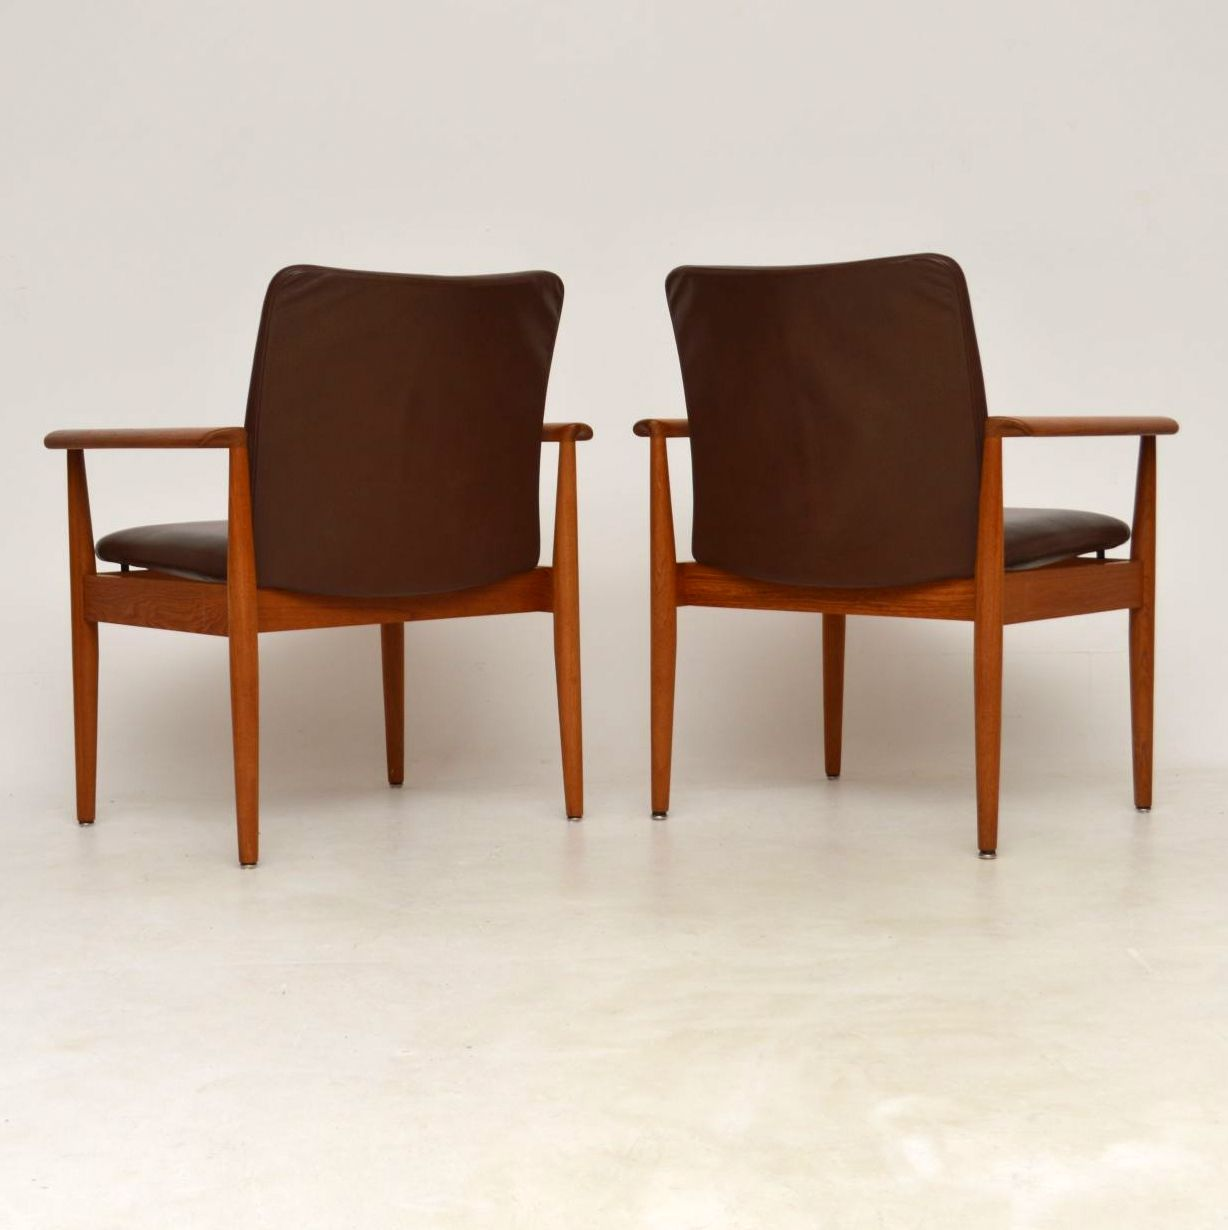 finn juhl sofabord teak sofa shallow foundation analysis 1960s pair of danish leather and vintage armchairs by